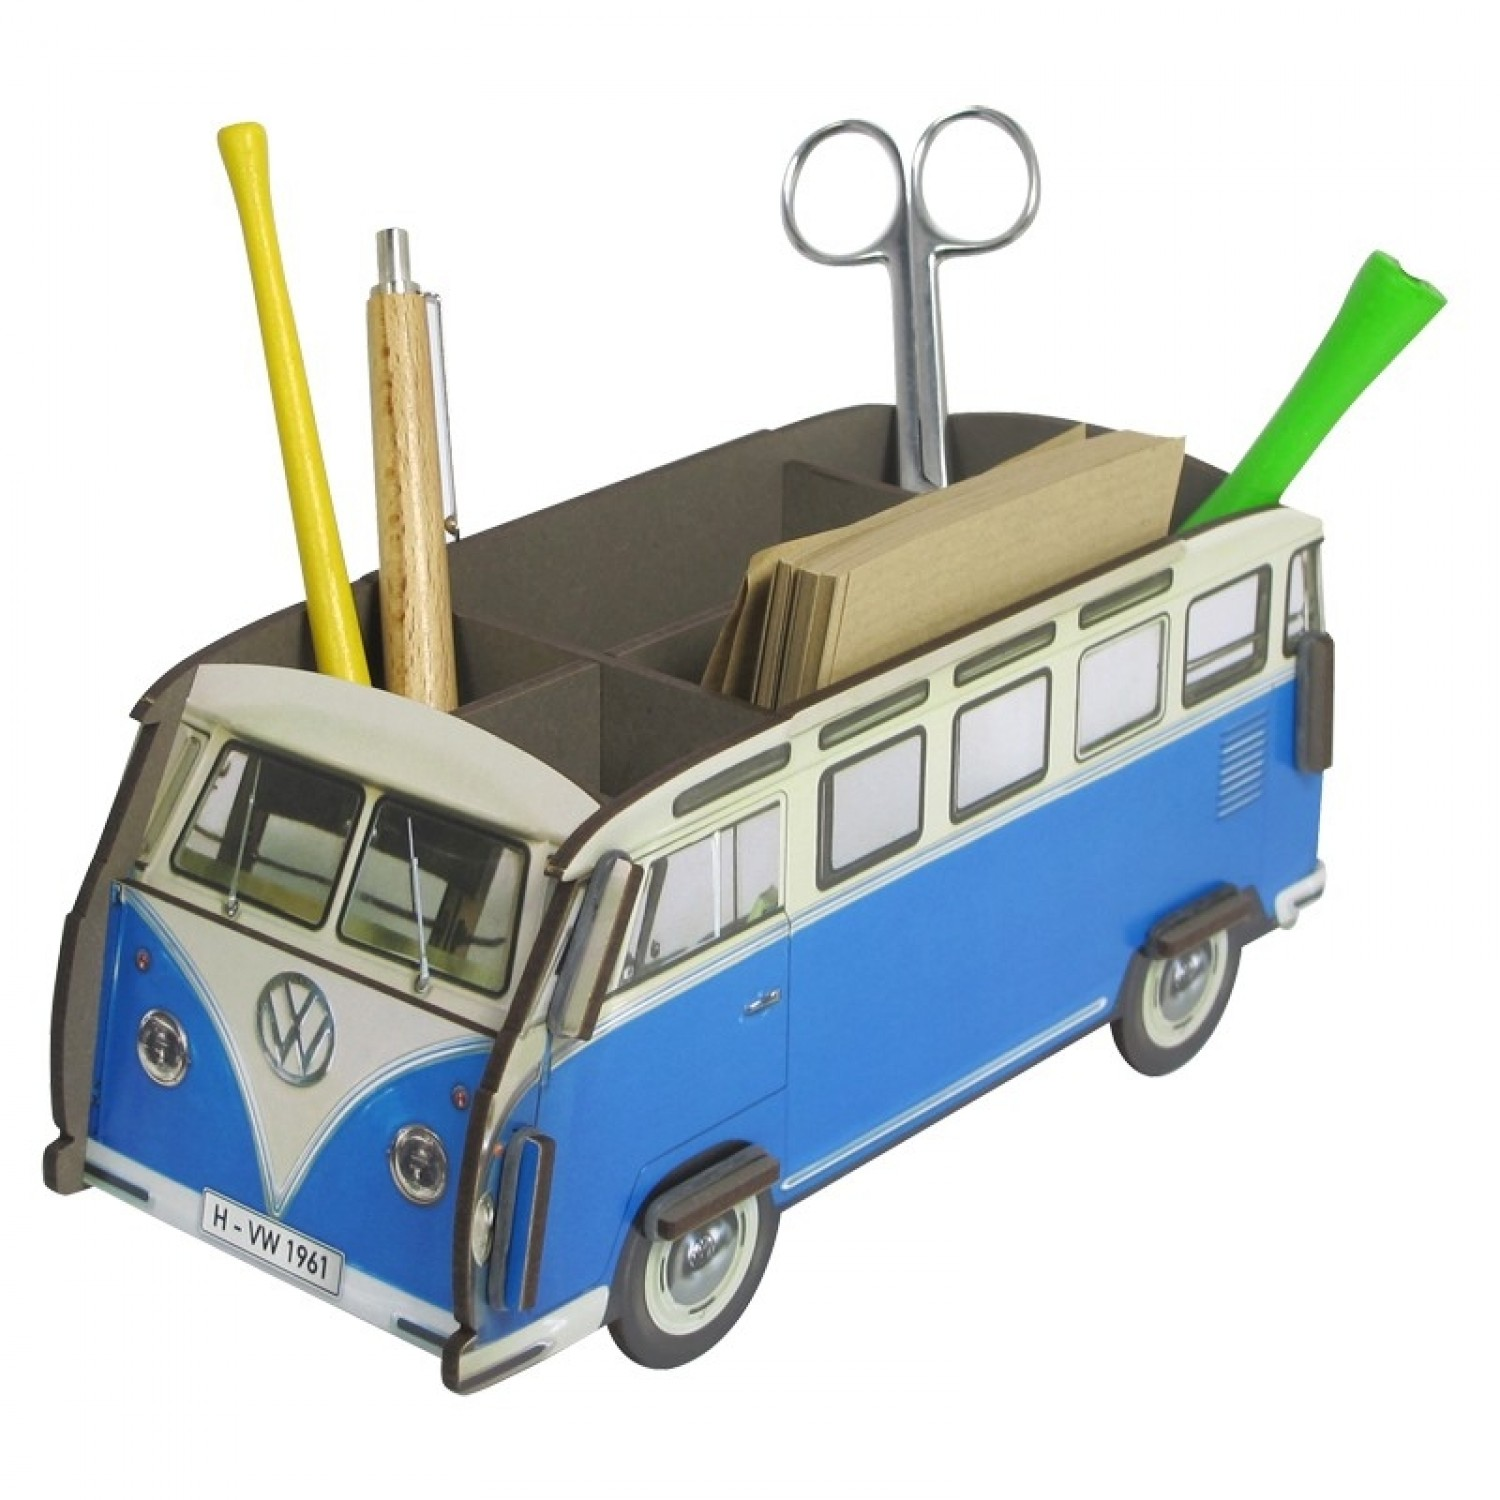 Werkhaus De Pencil Box And Organizer Vw T1samba In Various Colours